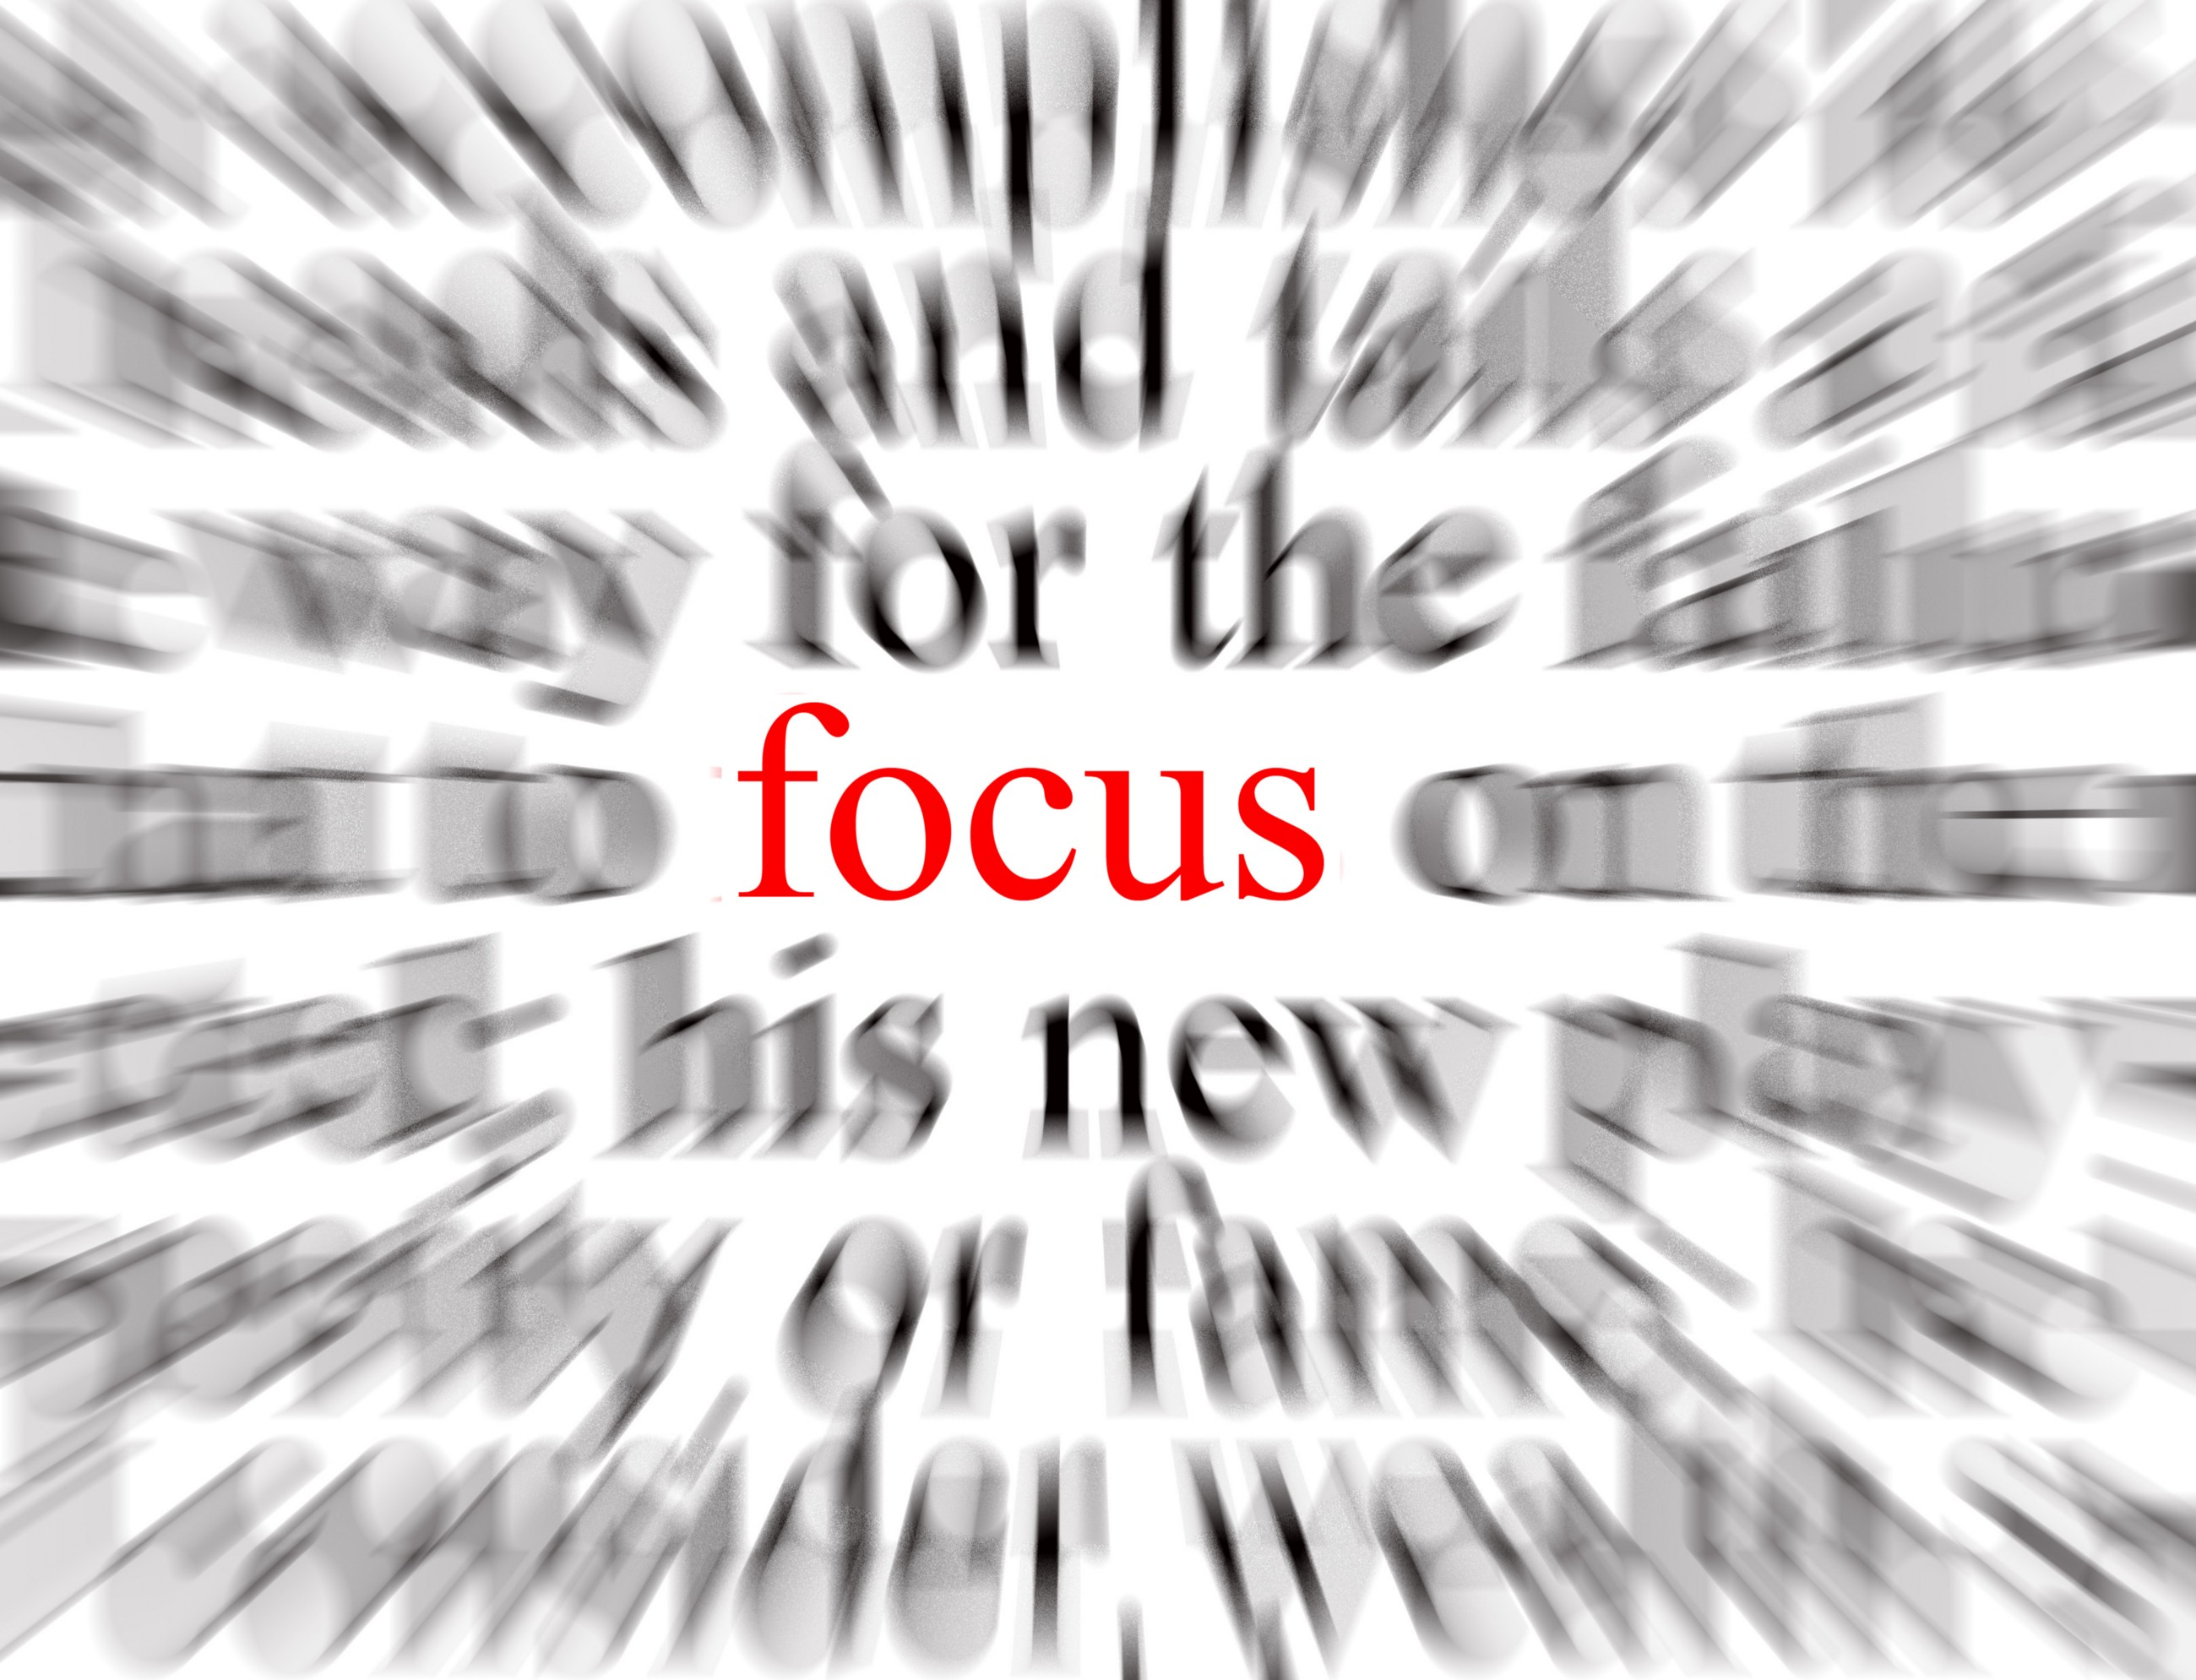 /6-habits-to-stay-focused-at-your-computer-905c24ef62e3 feature image